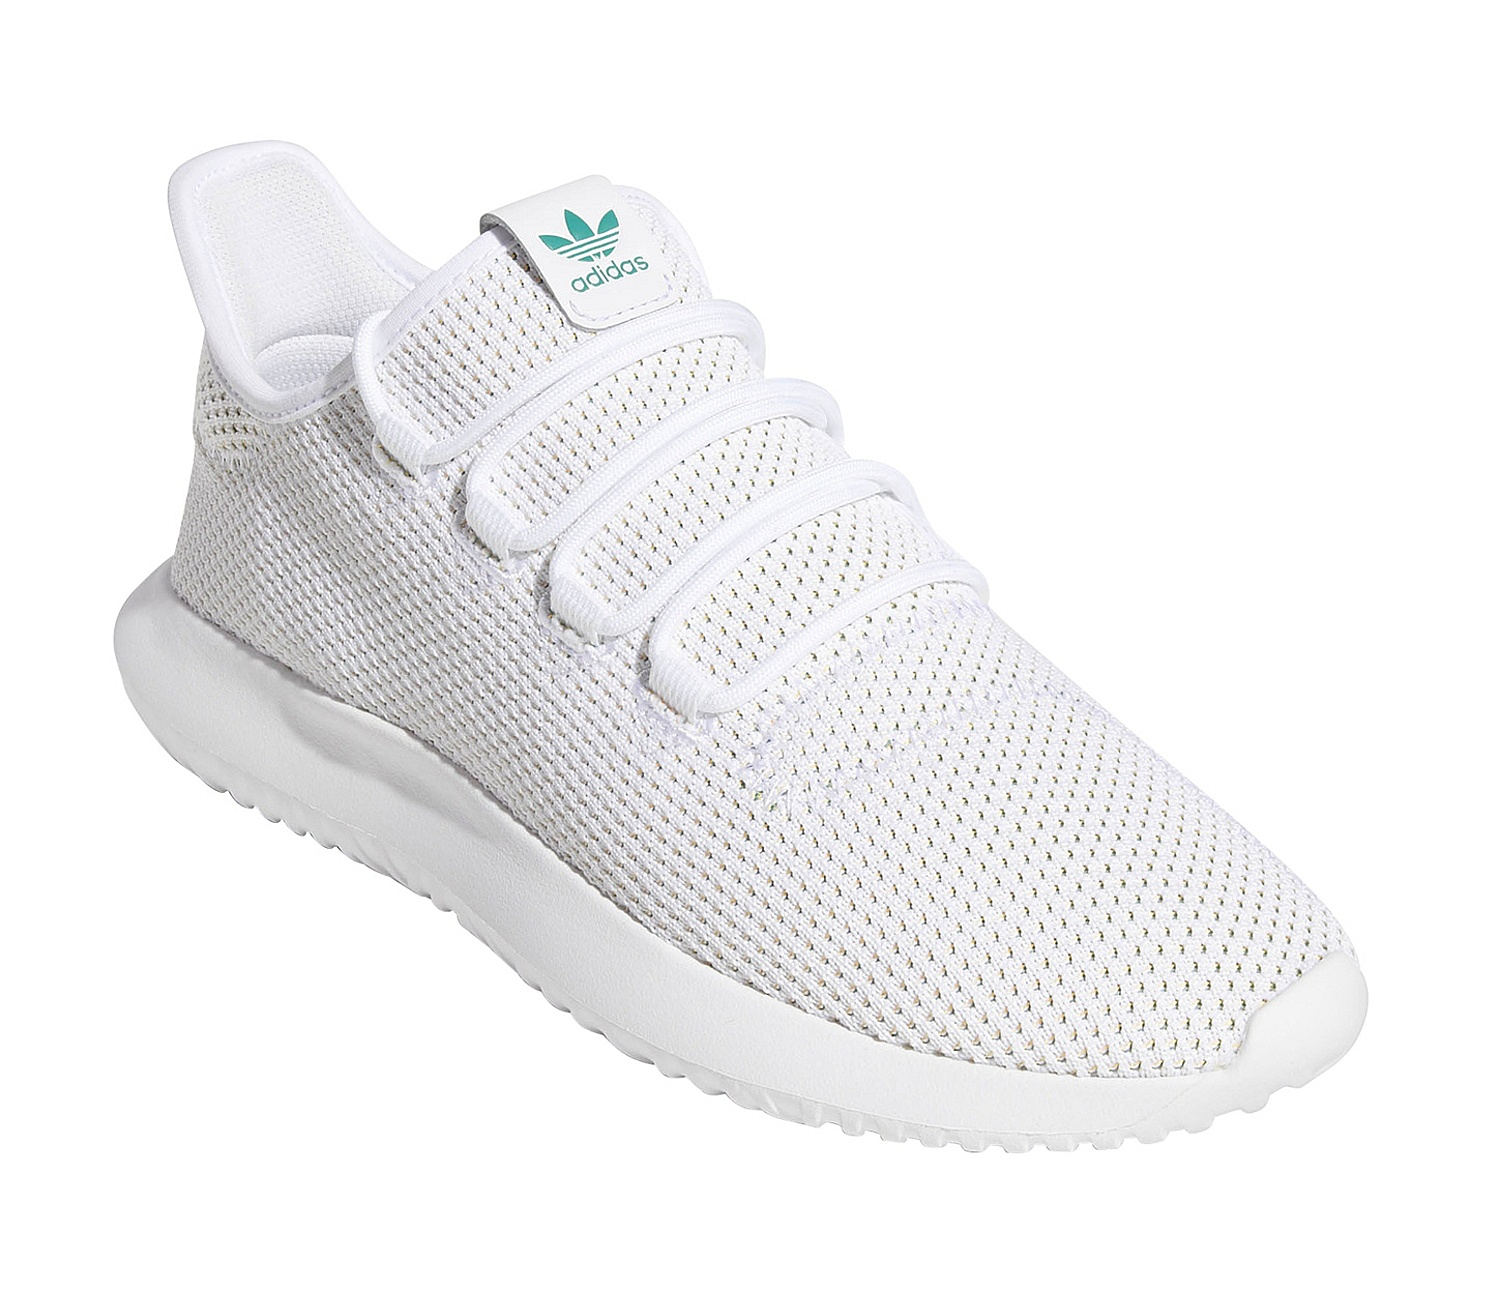 lowest price 58f50 4e785 shoes adidas Originals Tubular Shadow - White/Active Green ...